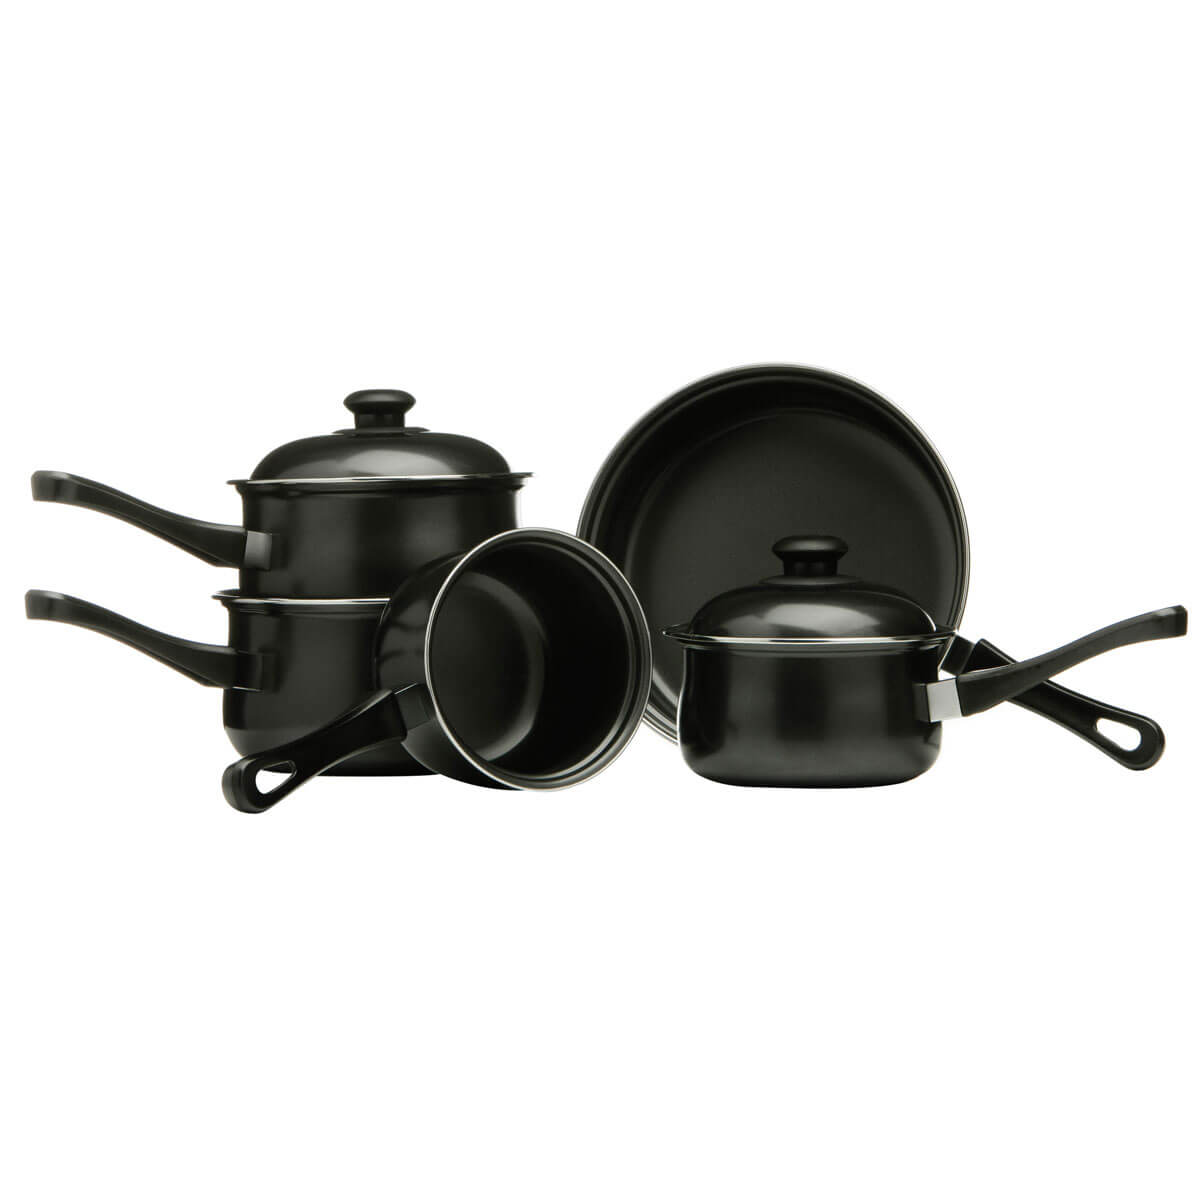 Premier Housewares 5 Piece Non Stick Carbon Steel Cookware Set - Black